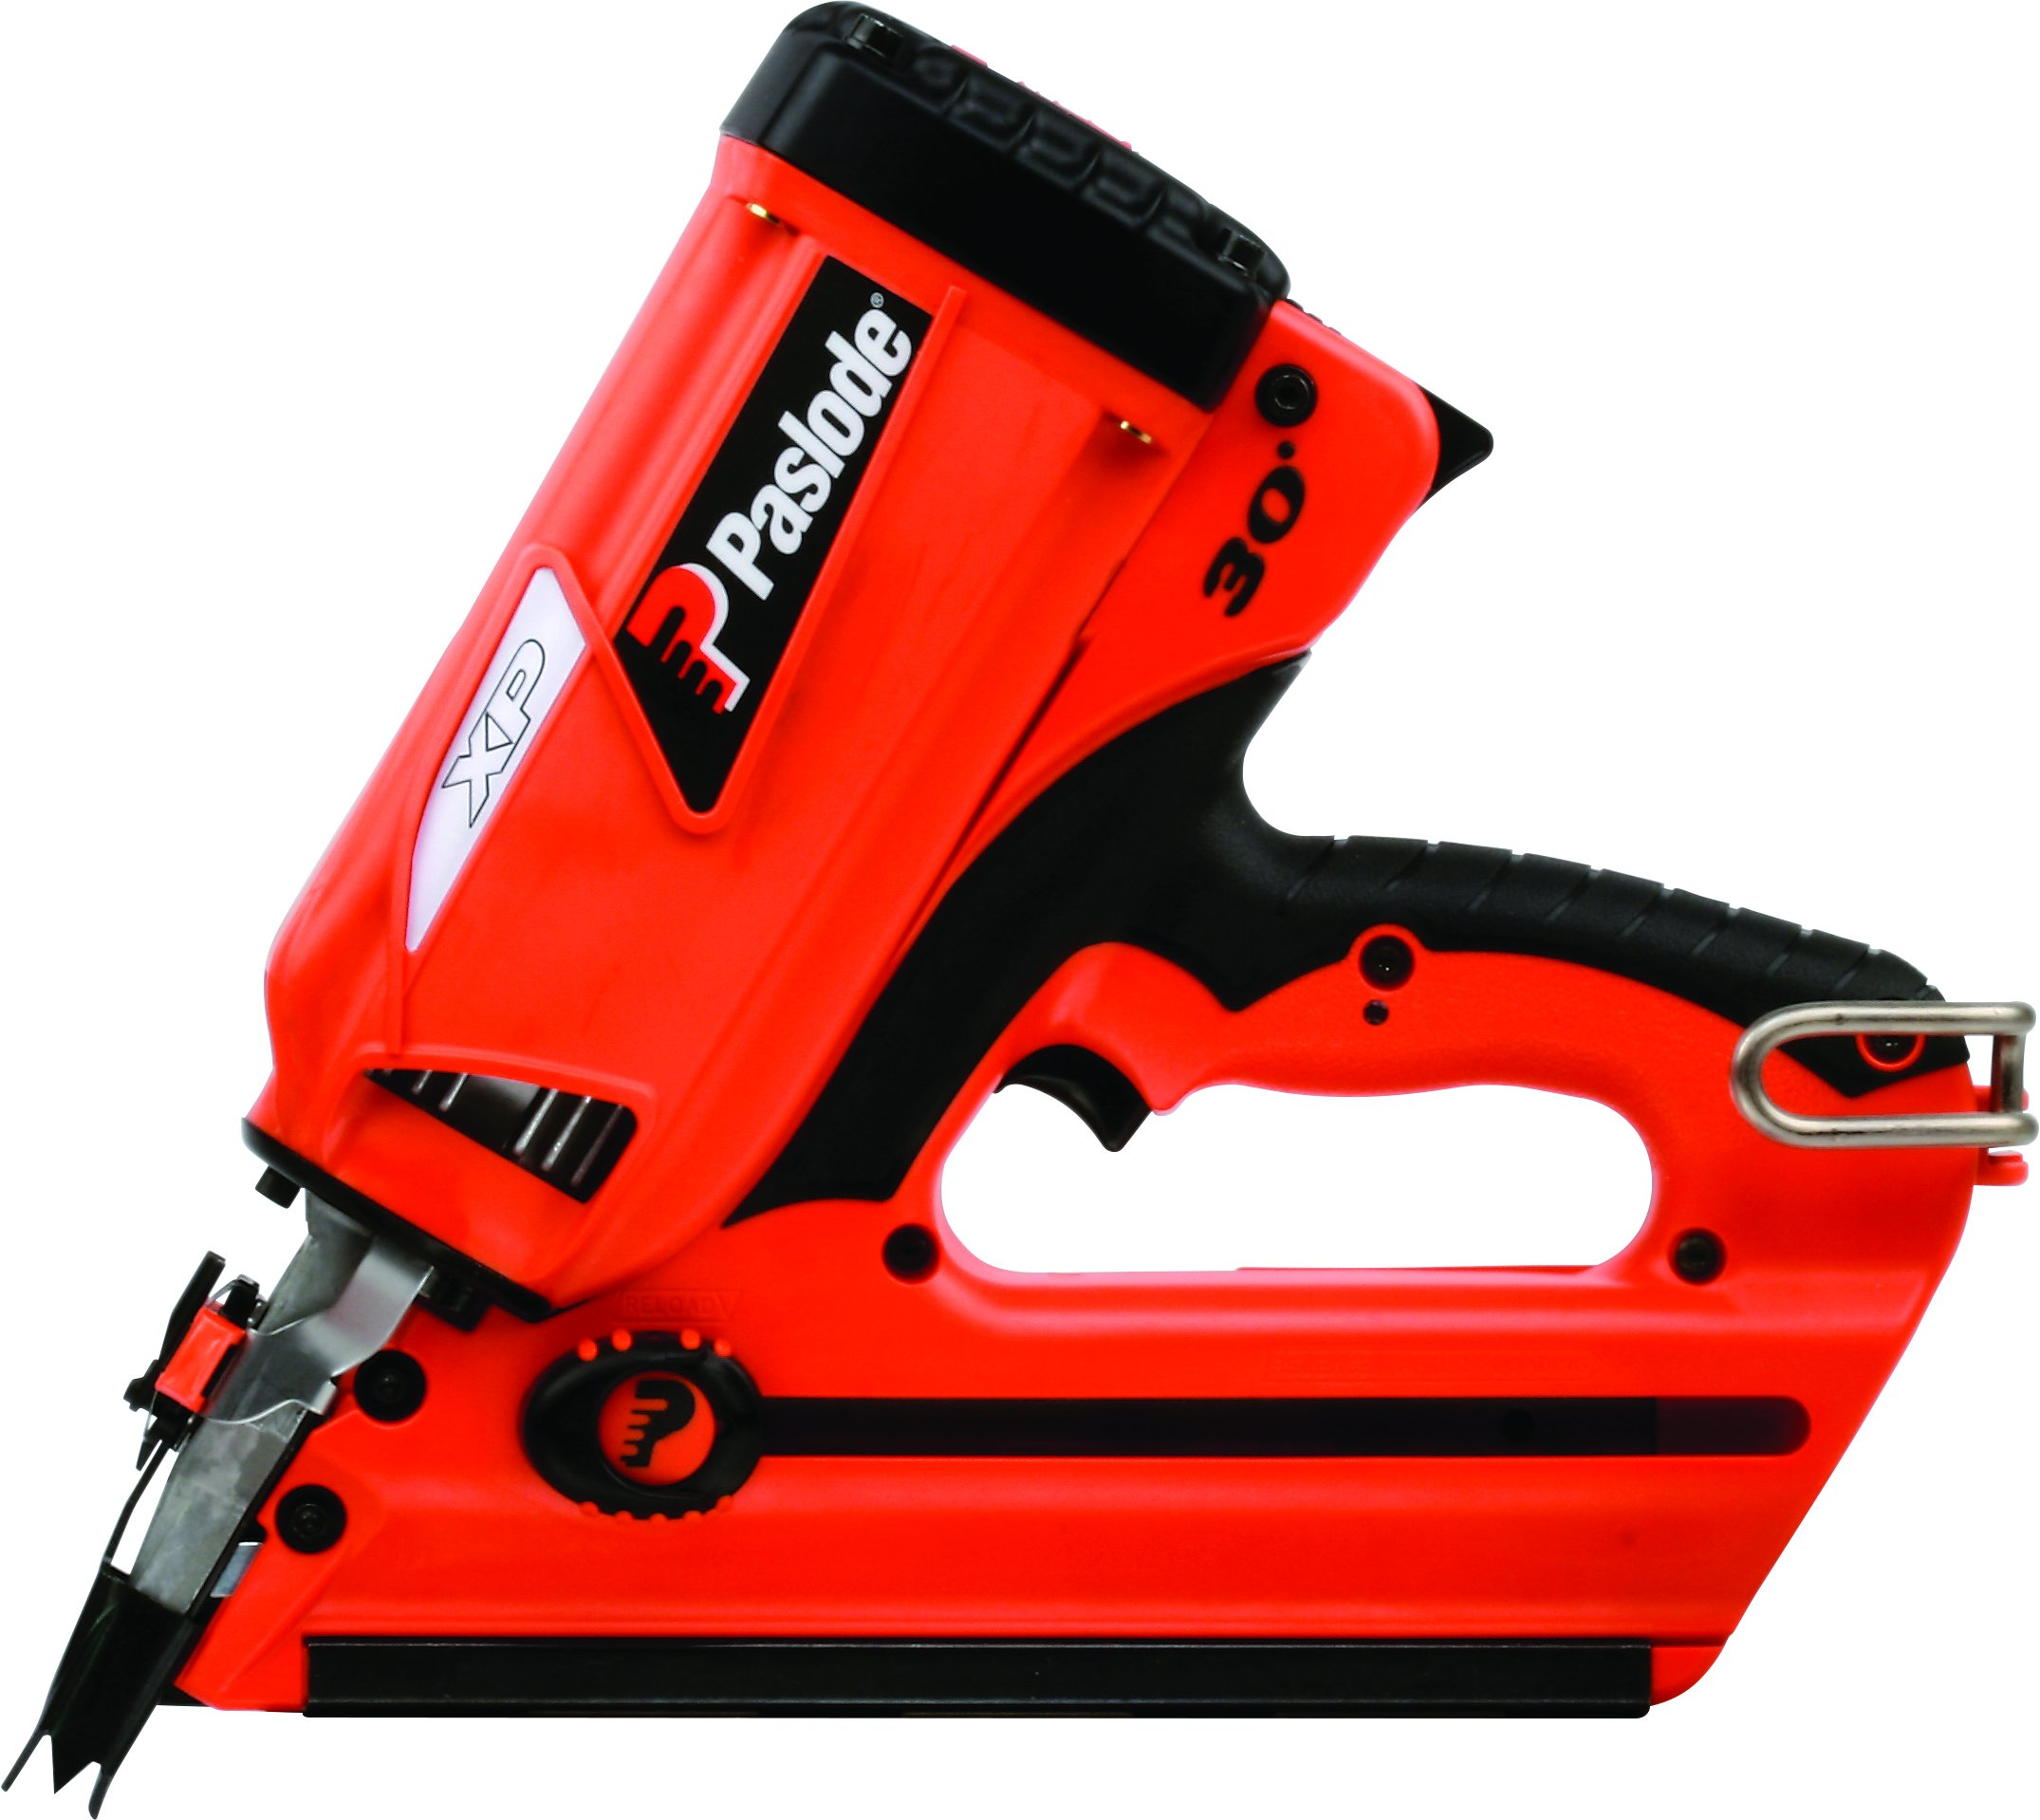 Paslode Xp Framing Nailer: Paslode 905600 Cordless XP Framing Nailer